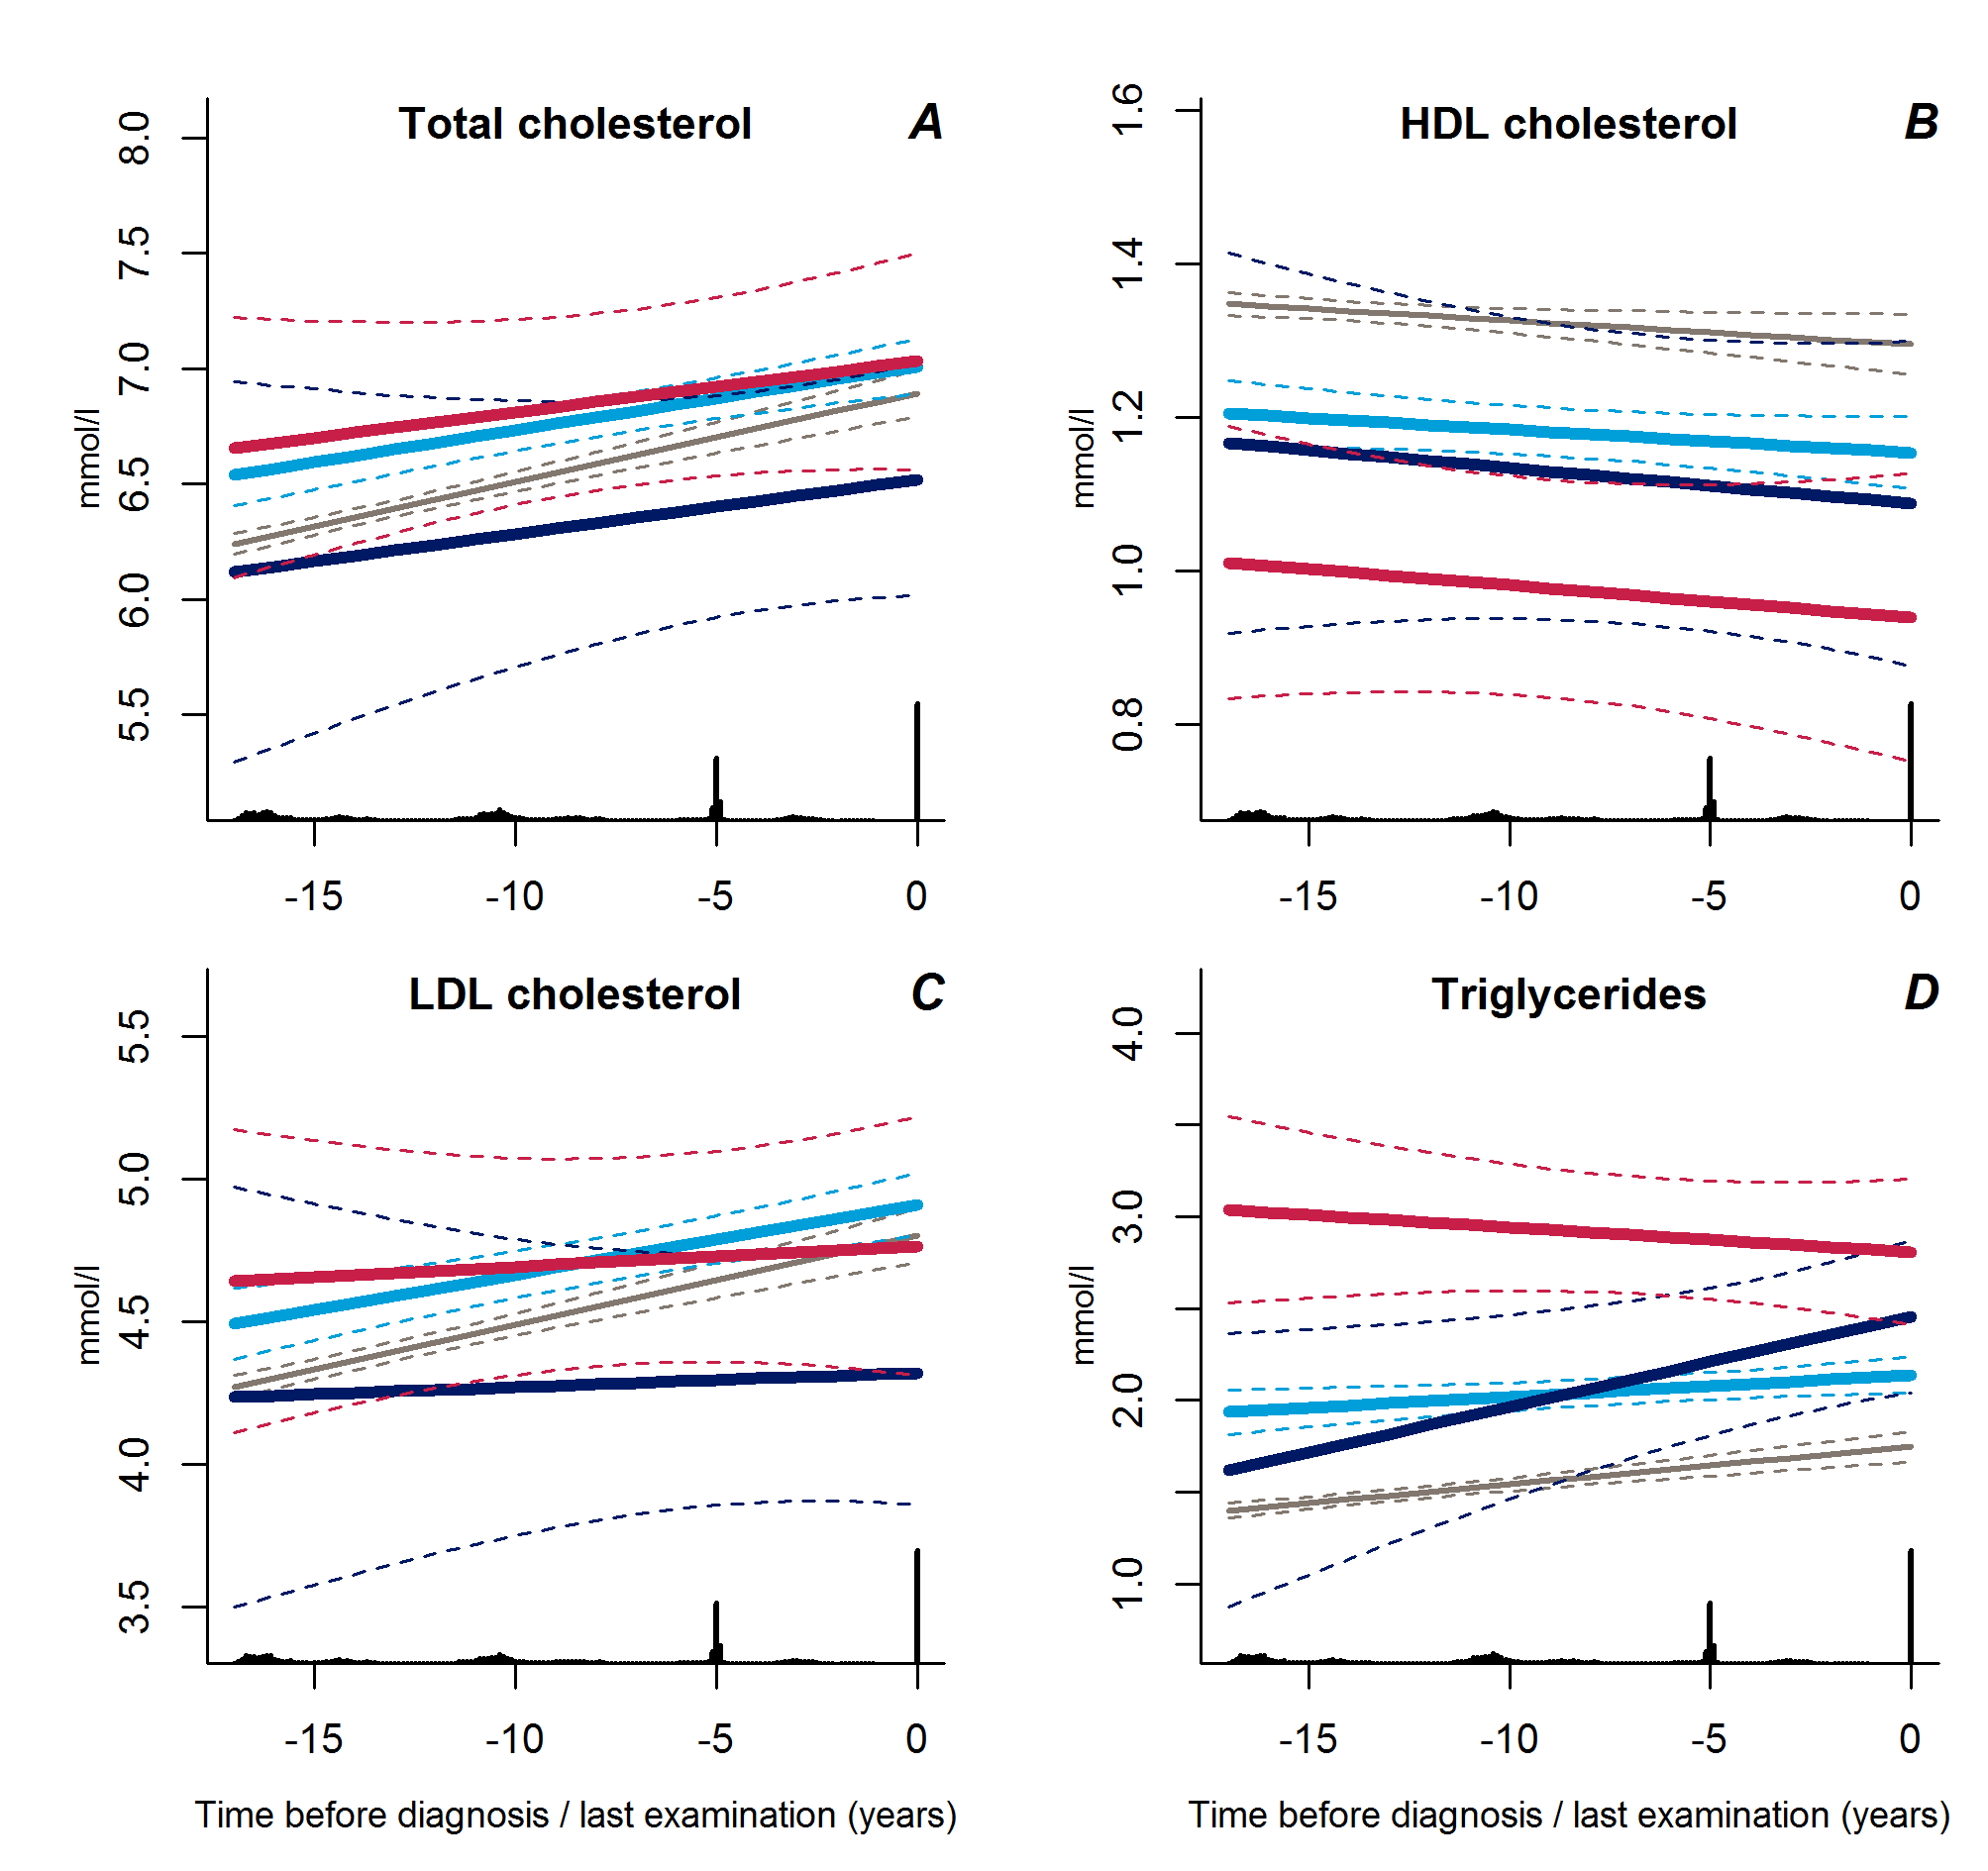 Trajectories for a hypothetical male, not on lipid-lowering treatment, age 60 years at time 0 of total cholesterol (A), HDL cholesterol (B), LDL cholesterol (C), and triglycerides (D) from 18 years before time of diagnosis/last examination.